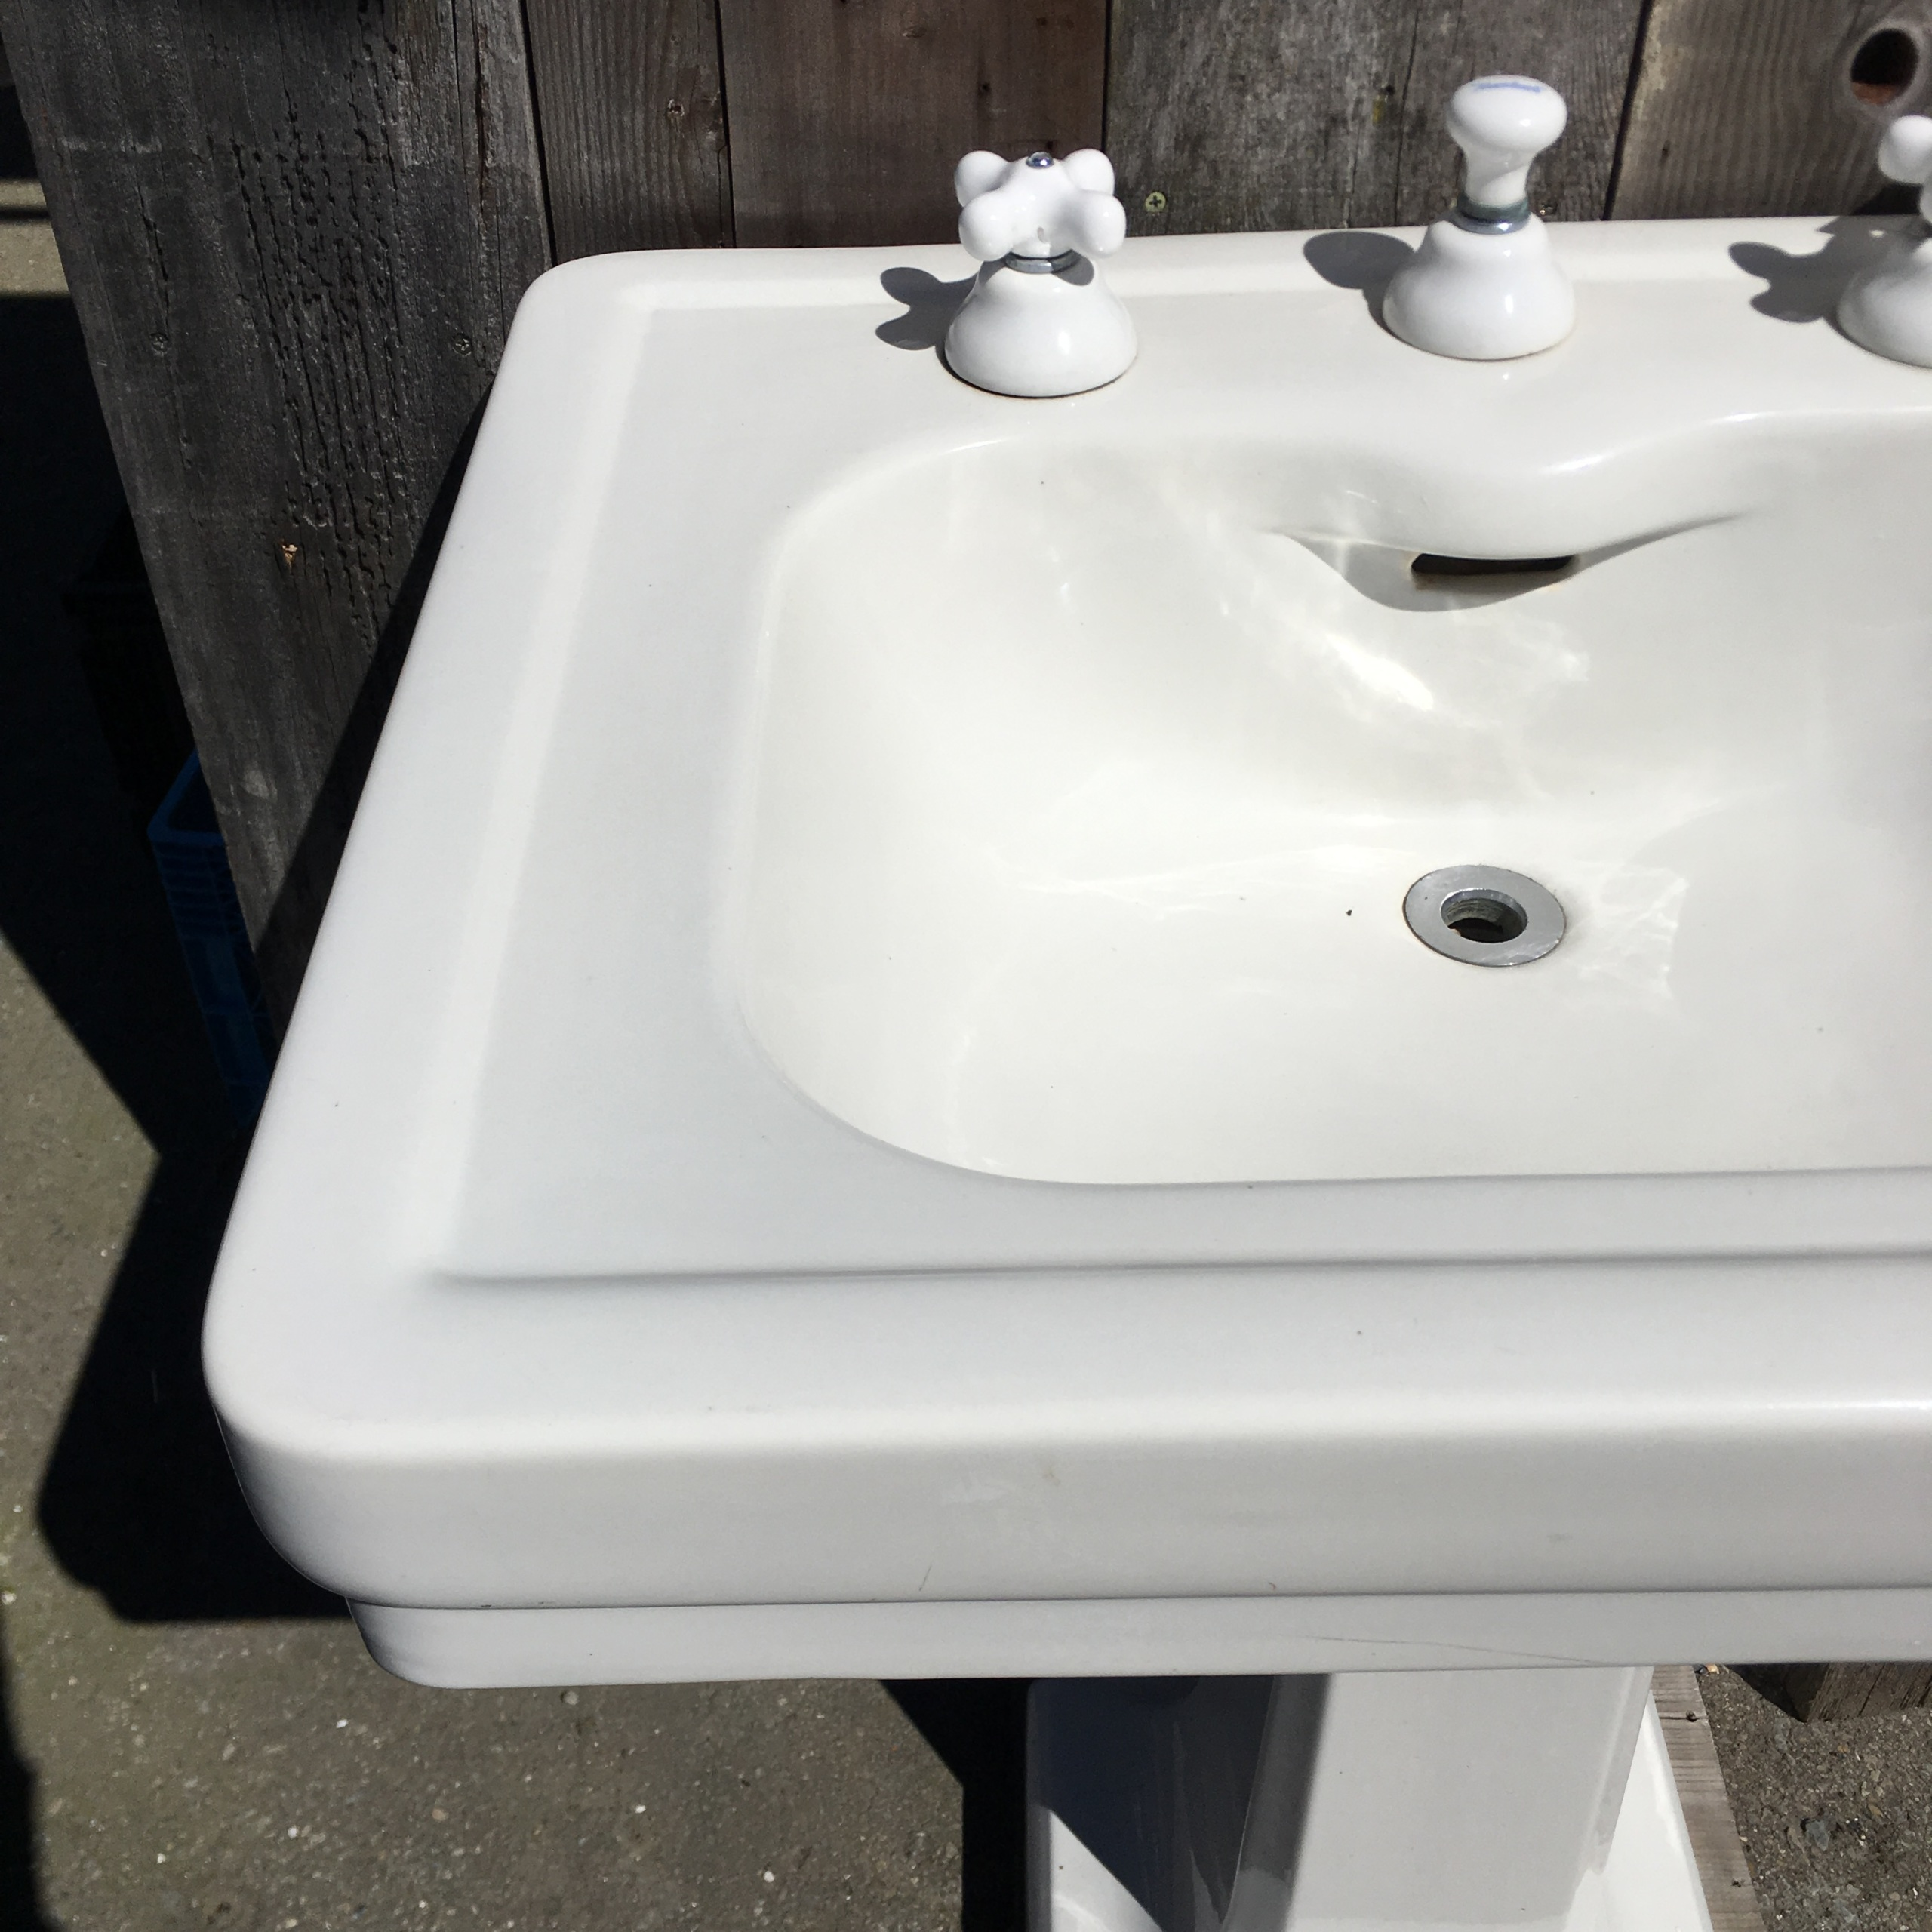 Standard Pedestal Sink With Integral Porcelain Spout